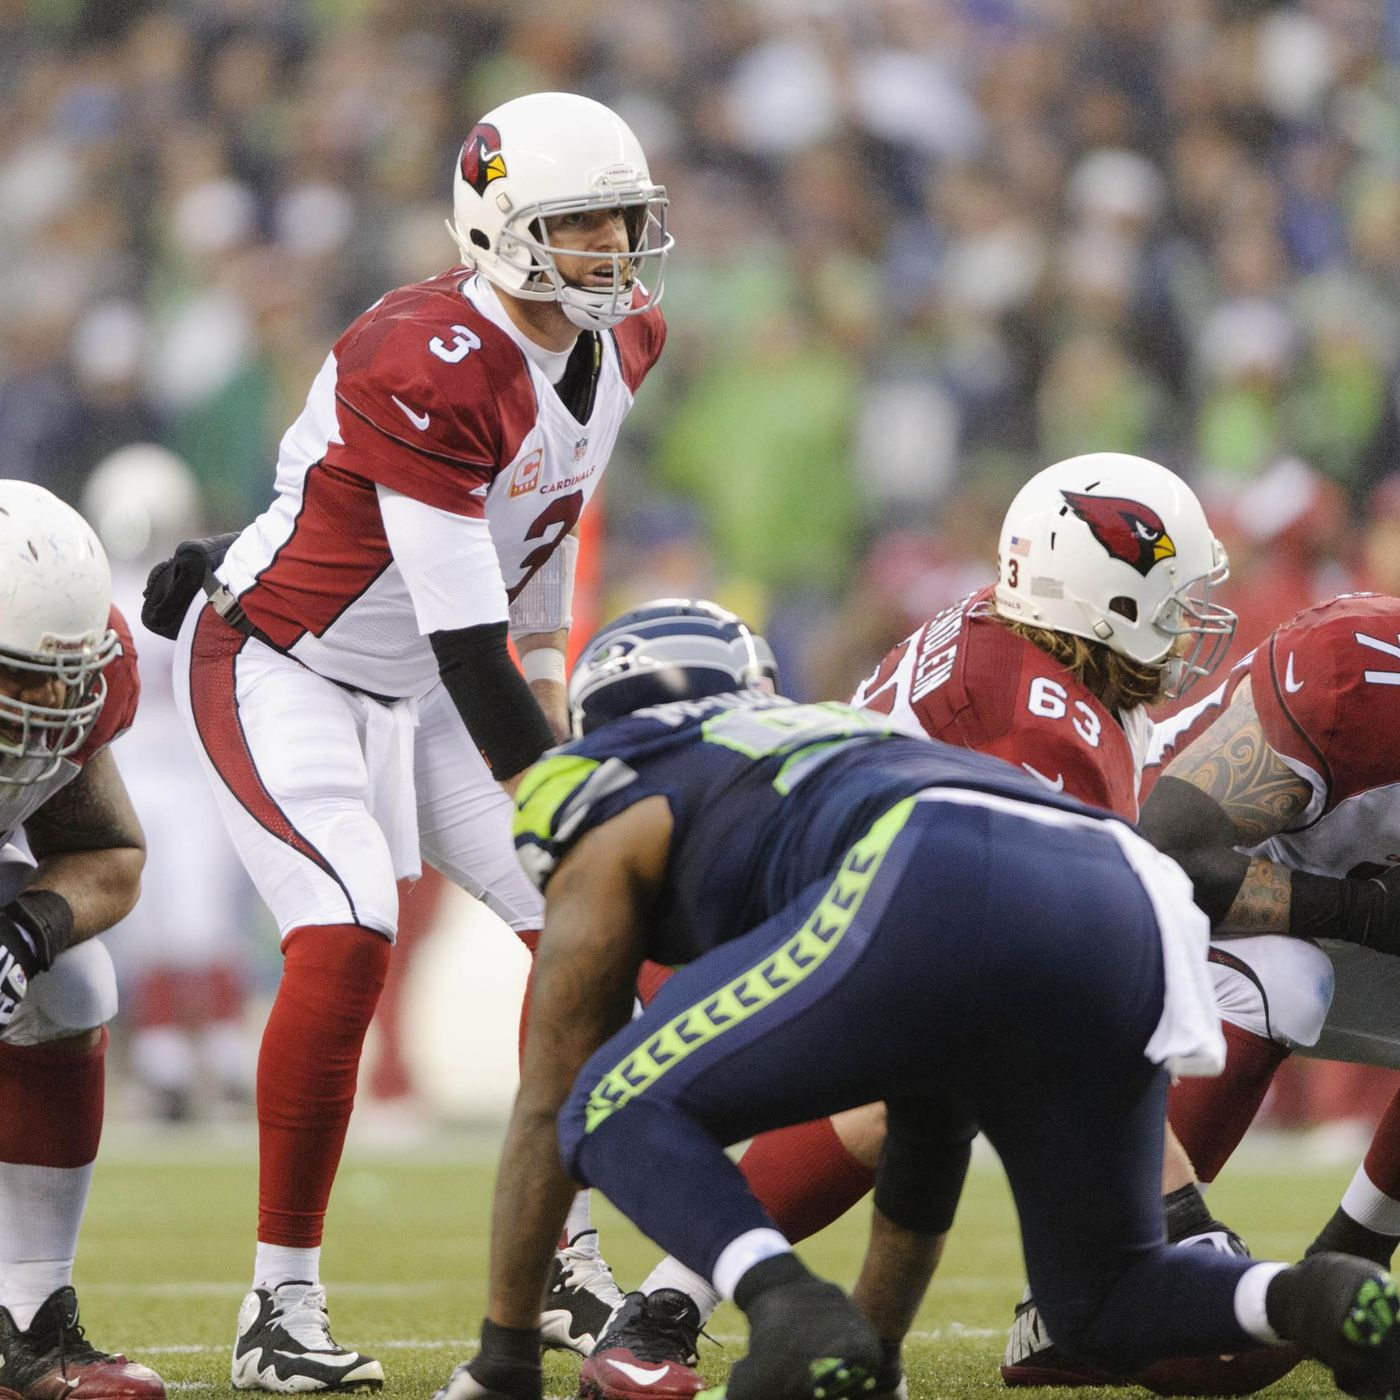 Nfl Scores Week 16 Recaps For All Games Plus Recapping The Recaps For Cardinals Seahawks Revenge Of The Birds